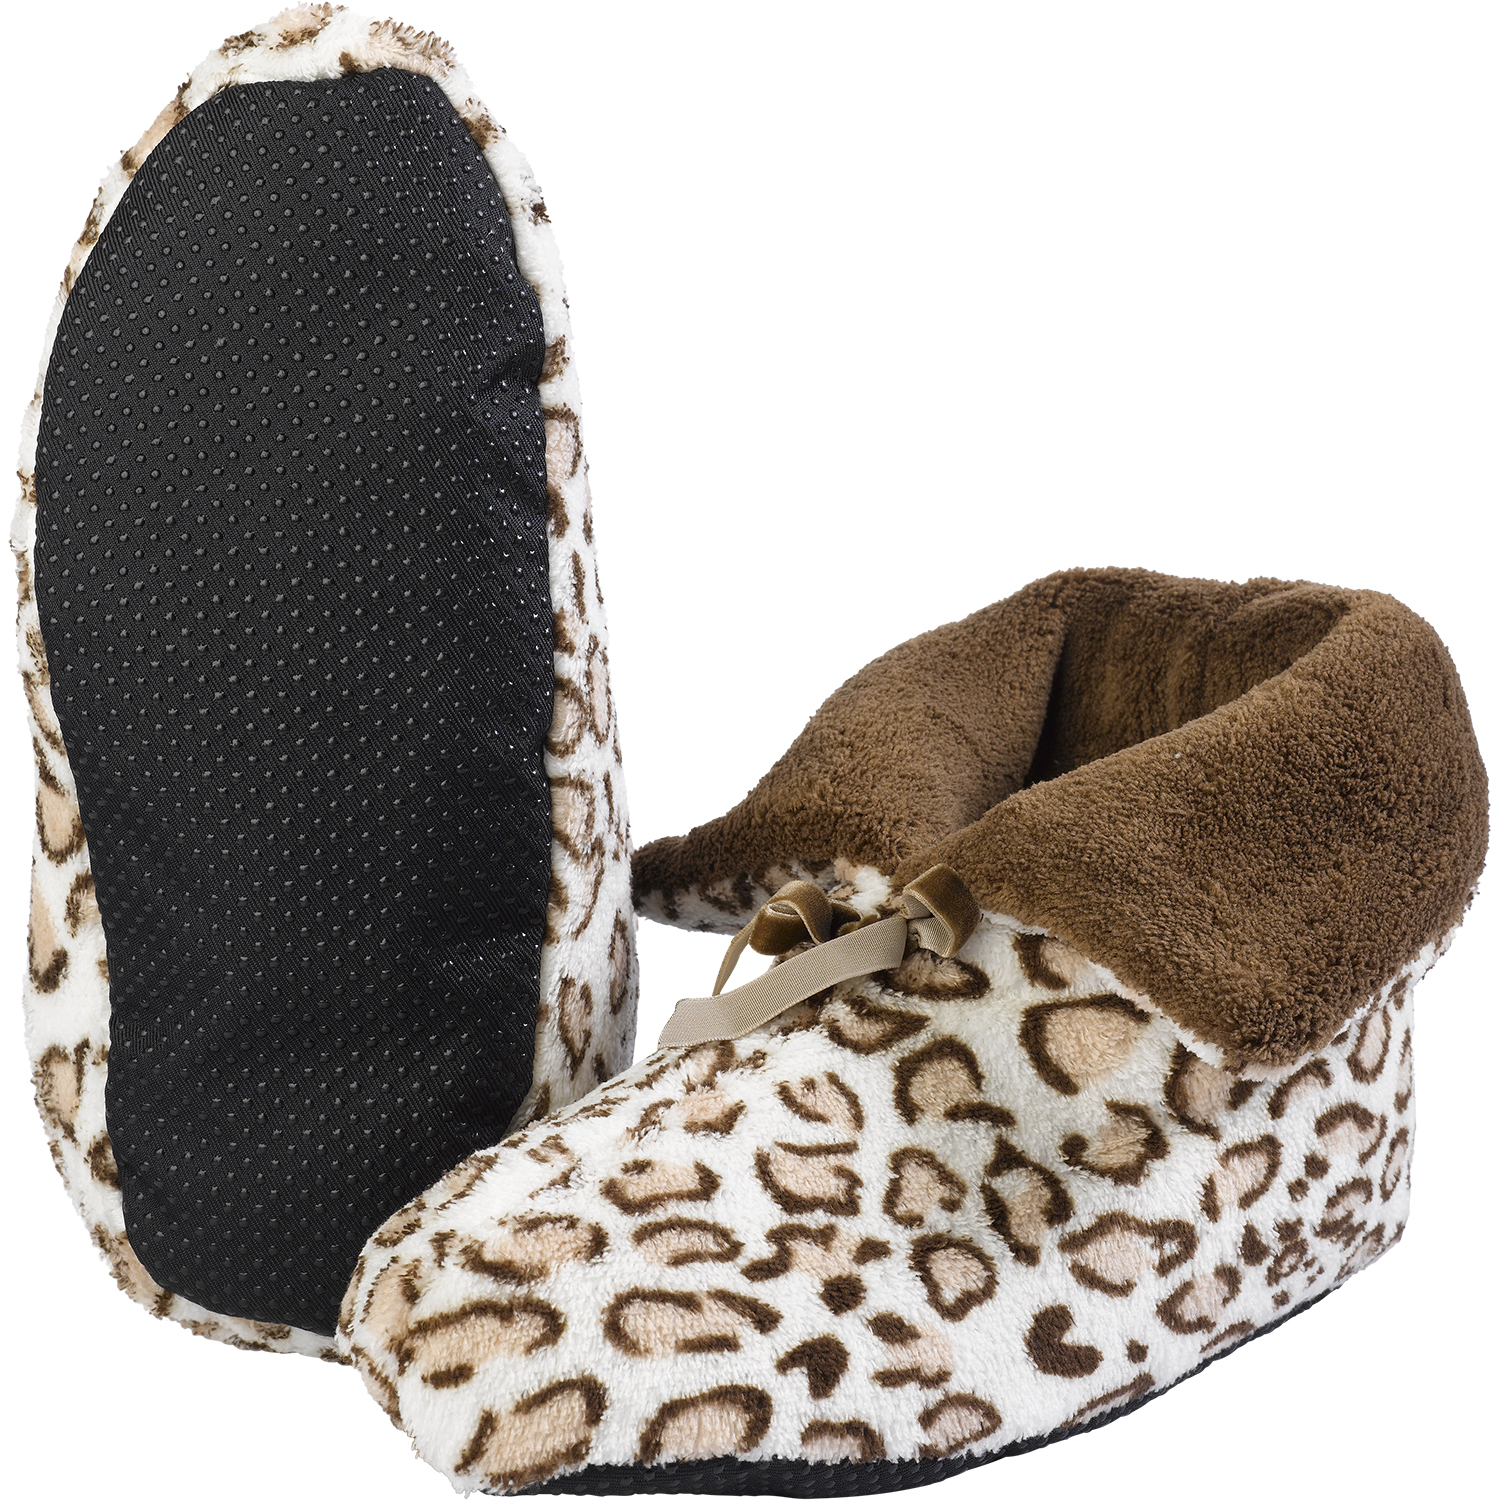 Shop for leopard slipper boots online at Target. Free shipping on purchases over $35 and save 5% every day with your Target REDcard.